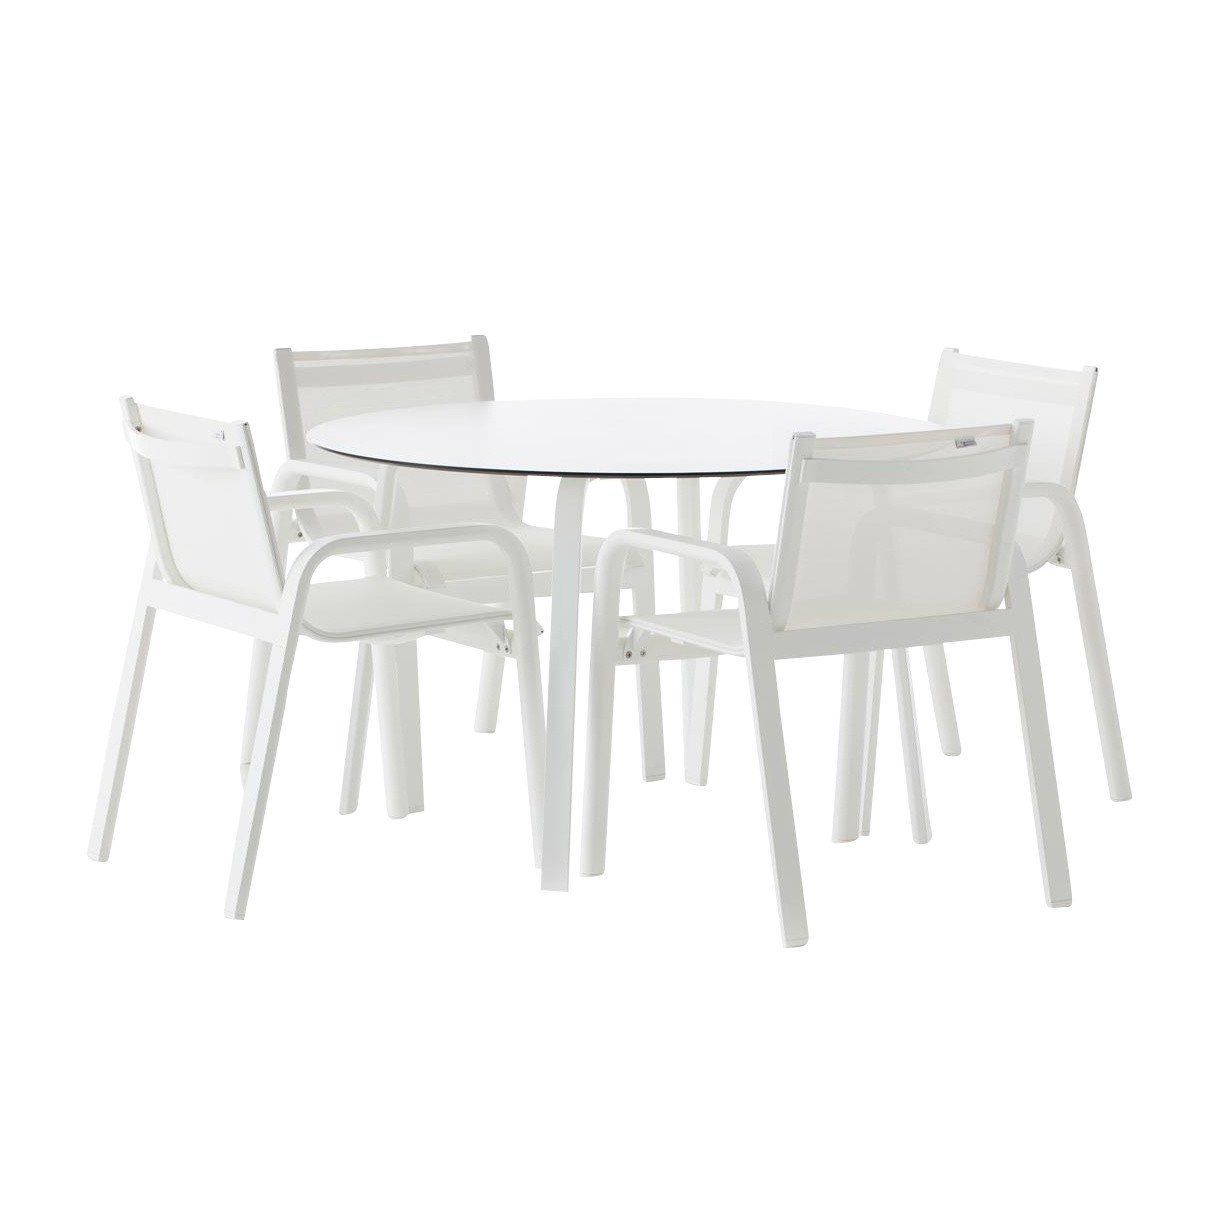 Gandia Blasco Stack - Muebles de jardín Set | AmbienteDirect